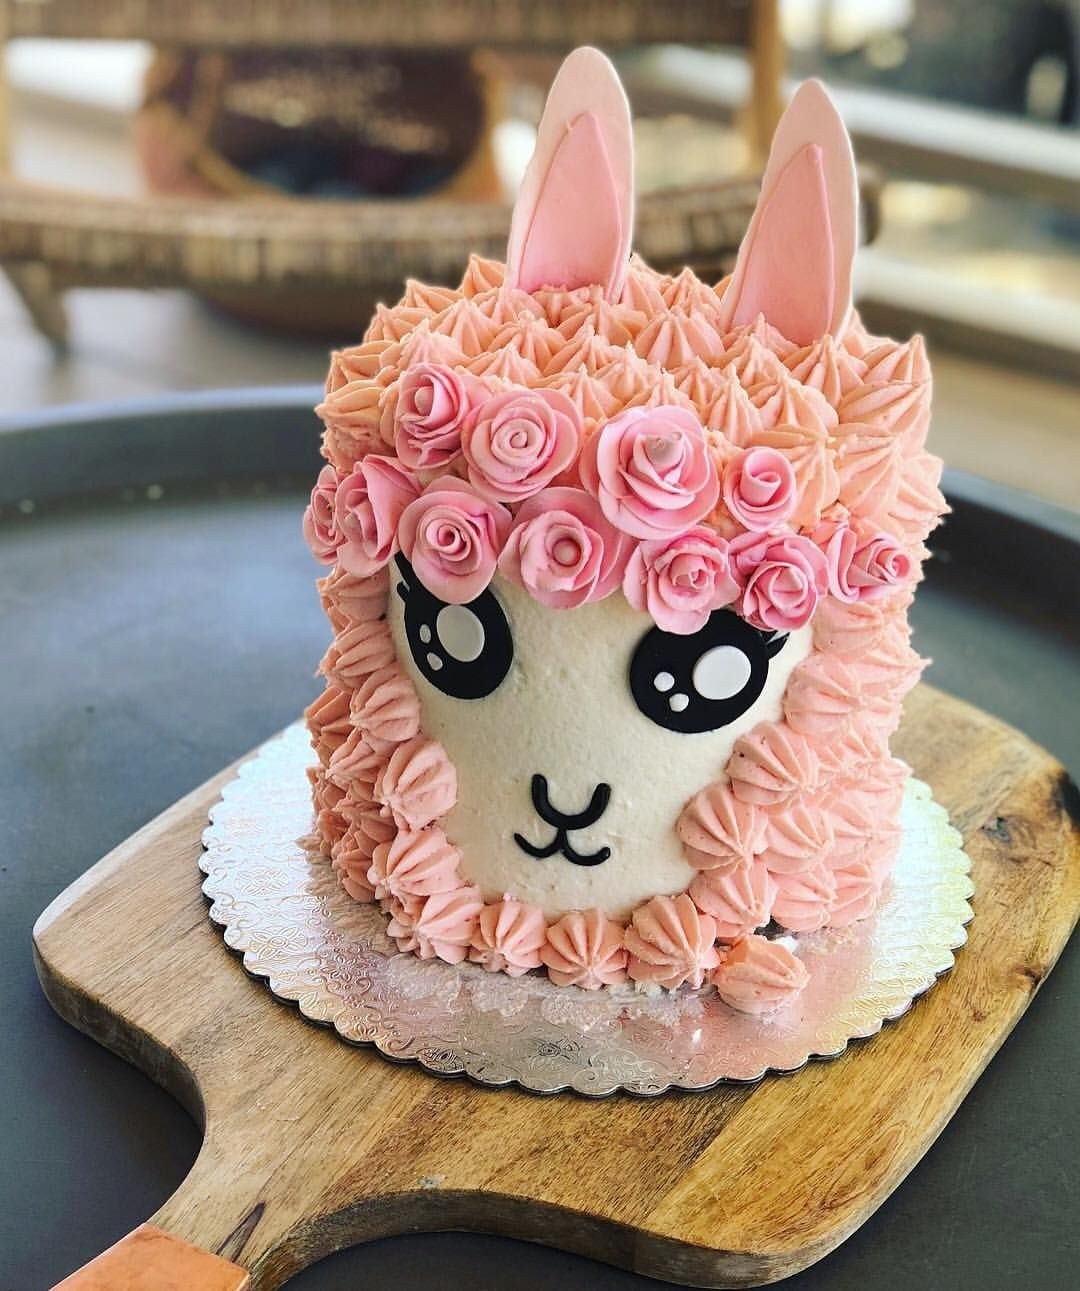 Lama Or Alpaca I Wonder What S Next To Order Your Next Celebration Cake Click The Link In Our Profile And Fil Cute Birthday Cakes Cake 40th Birthday Cakes